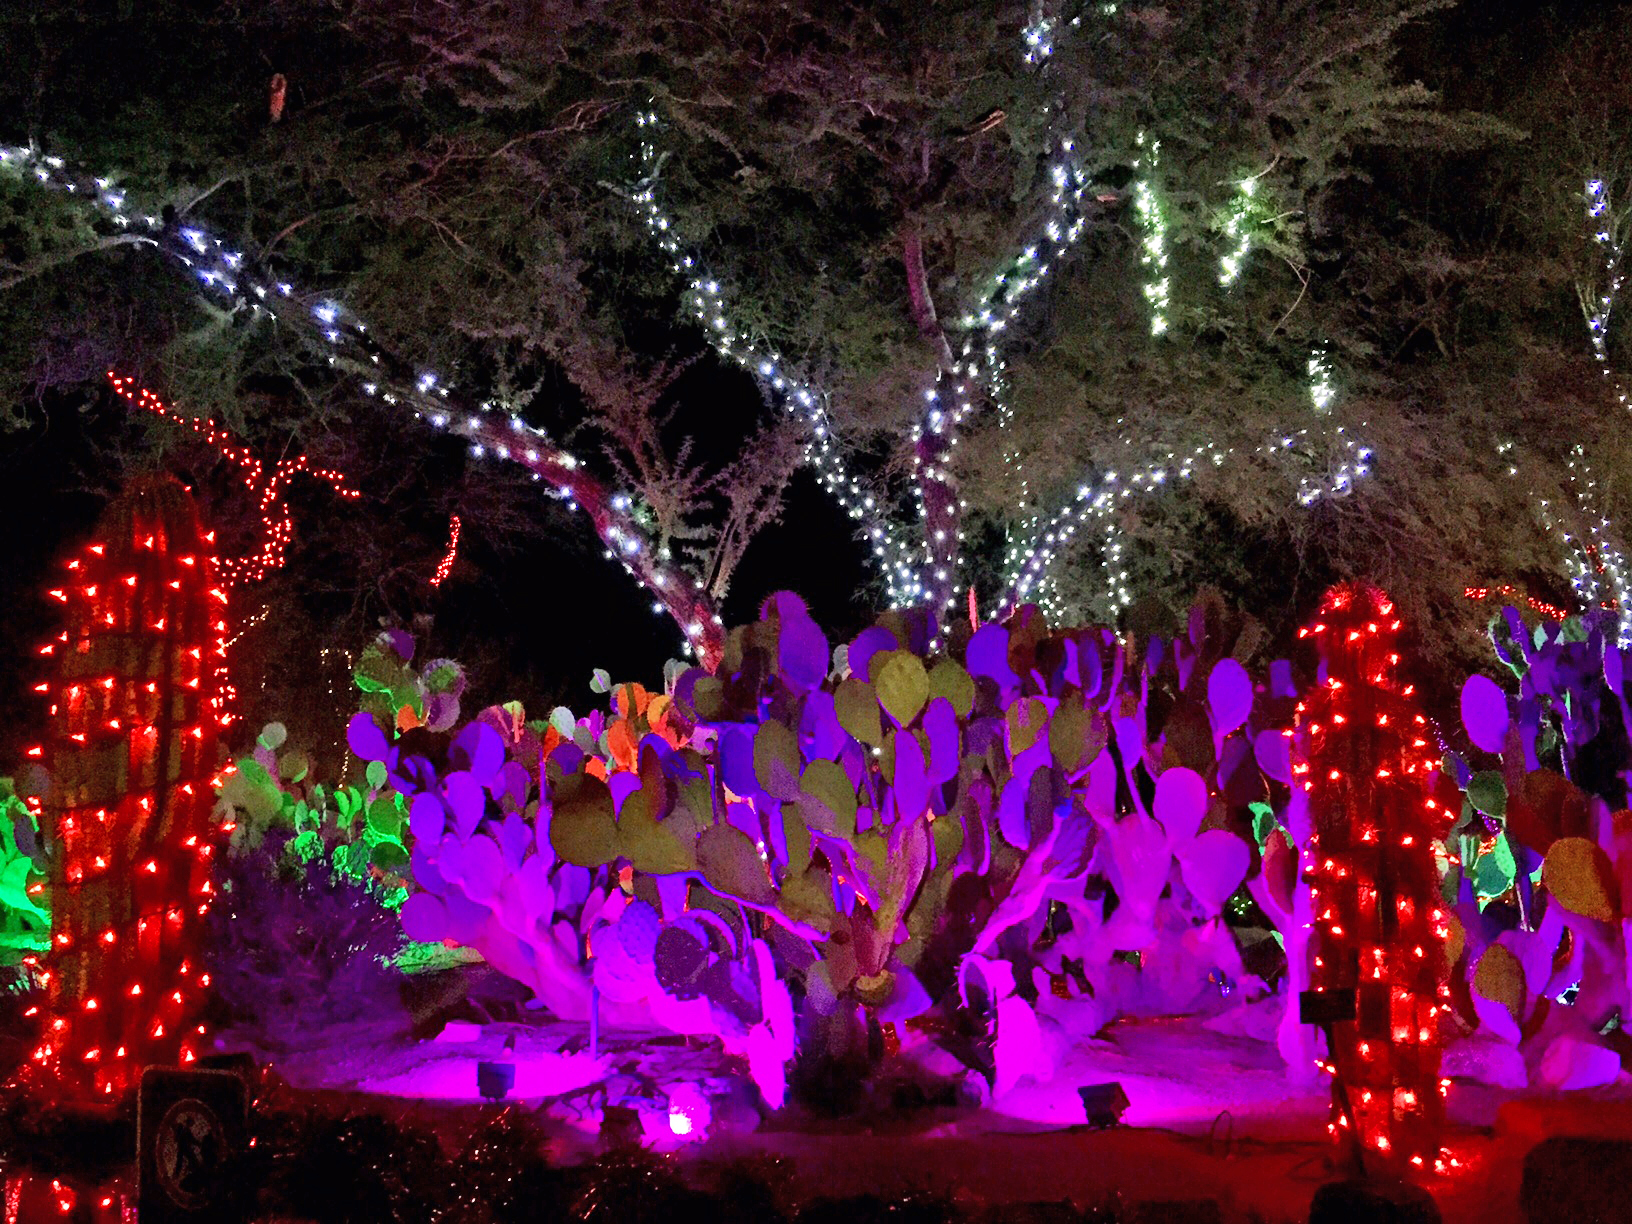 Check out the cactus garden at Ethel M, decked out in half a million lights. Photo by Ashley Oñoz-Wright/Vegas.com.